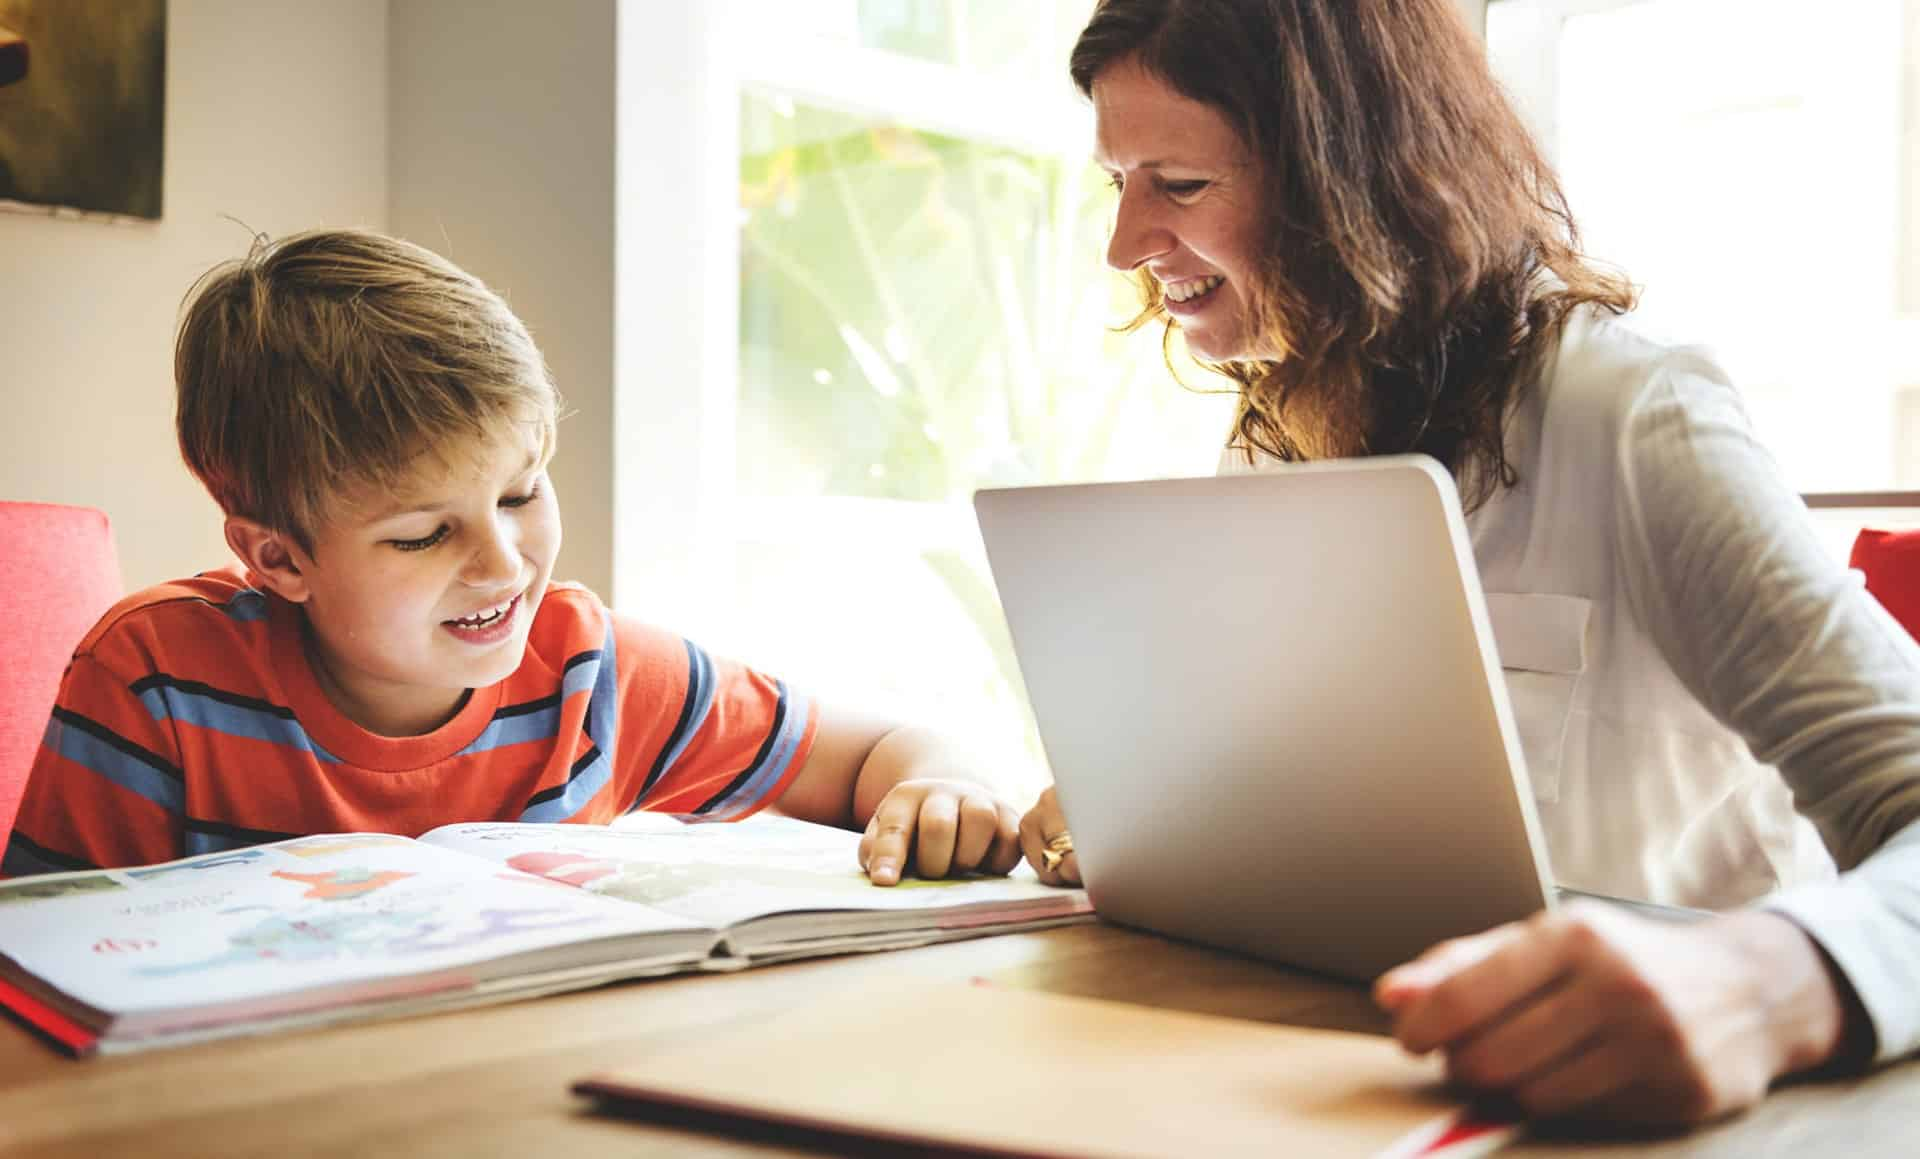 5 tips for home schooling - Prioritise your child's wellbeing - SFE Academy